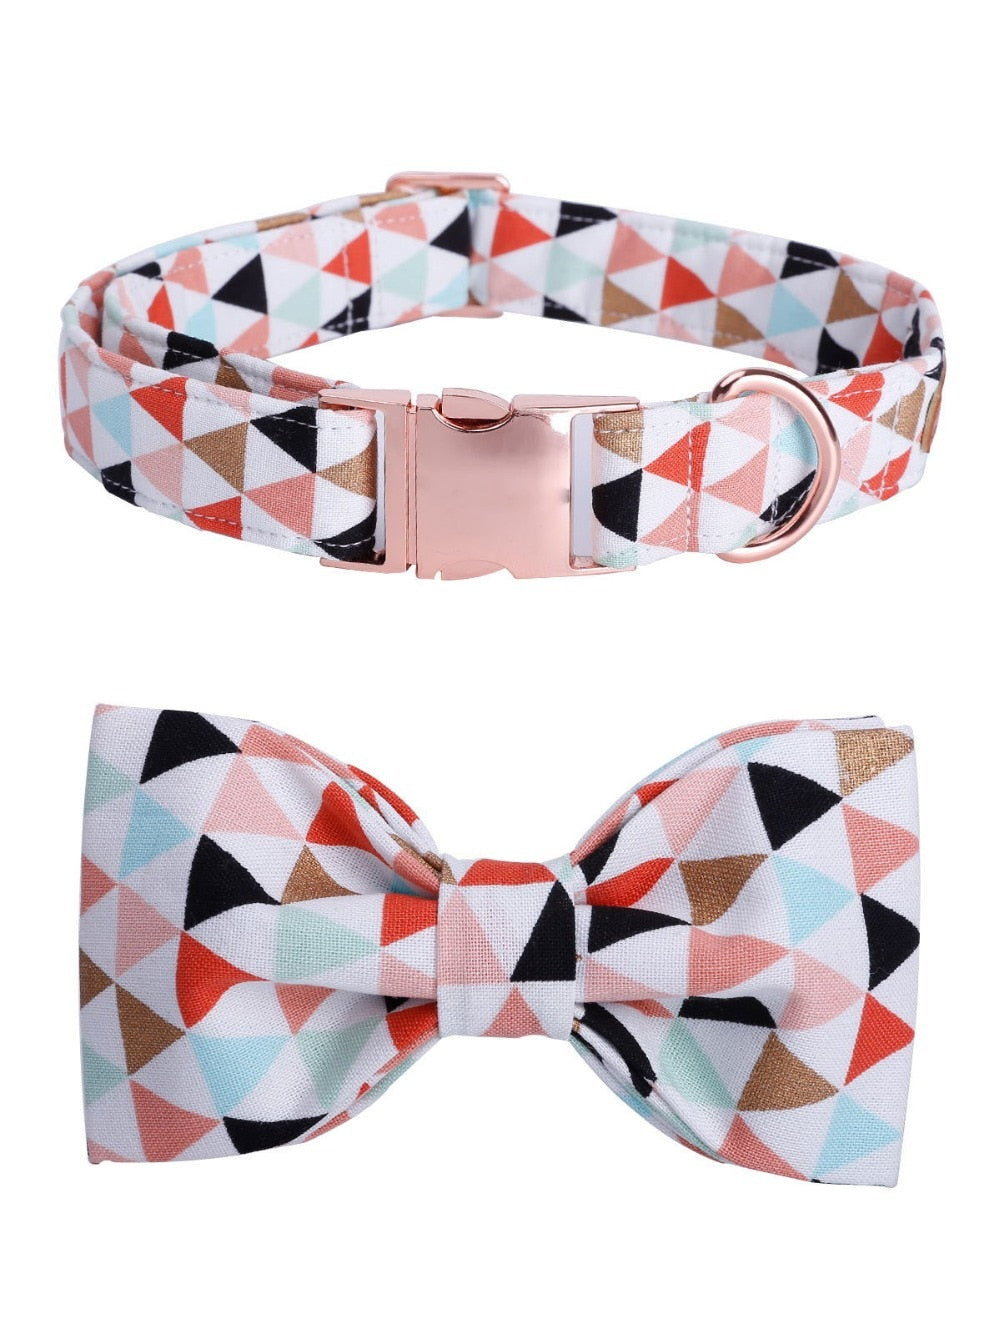 Geometric Pattern Collar, Bowtie and Leash set with Rose Gold colored buckle